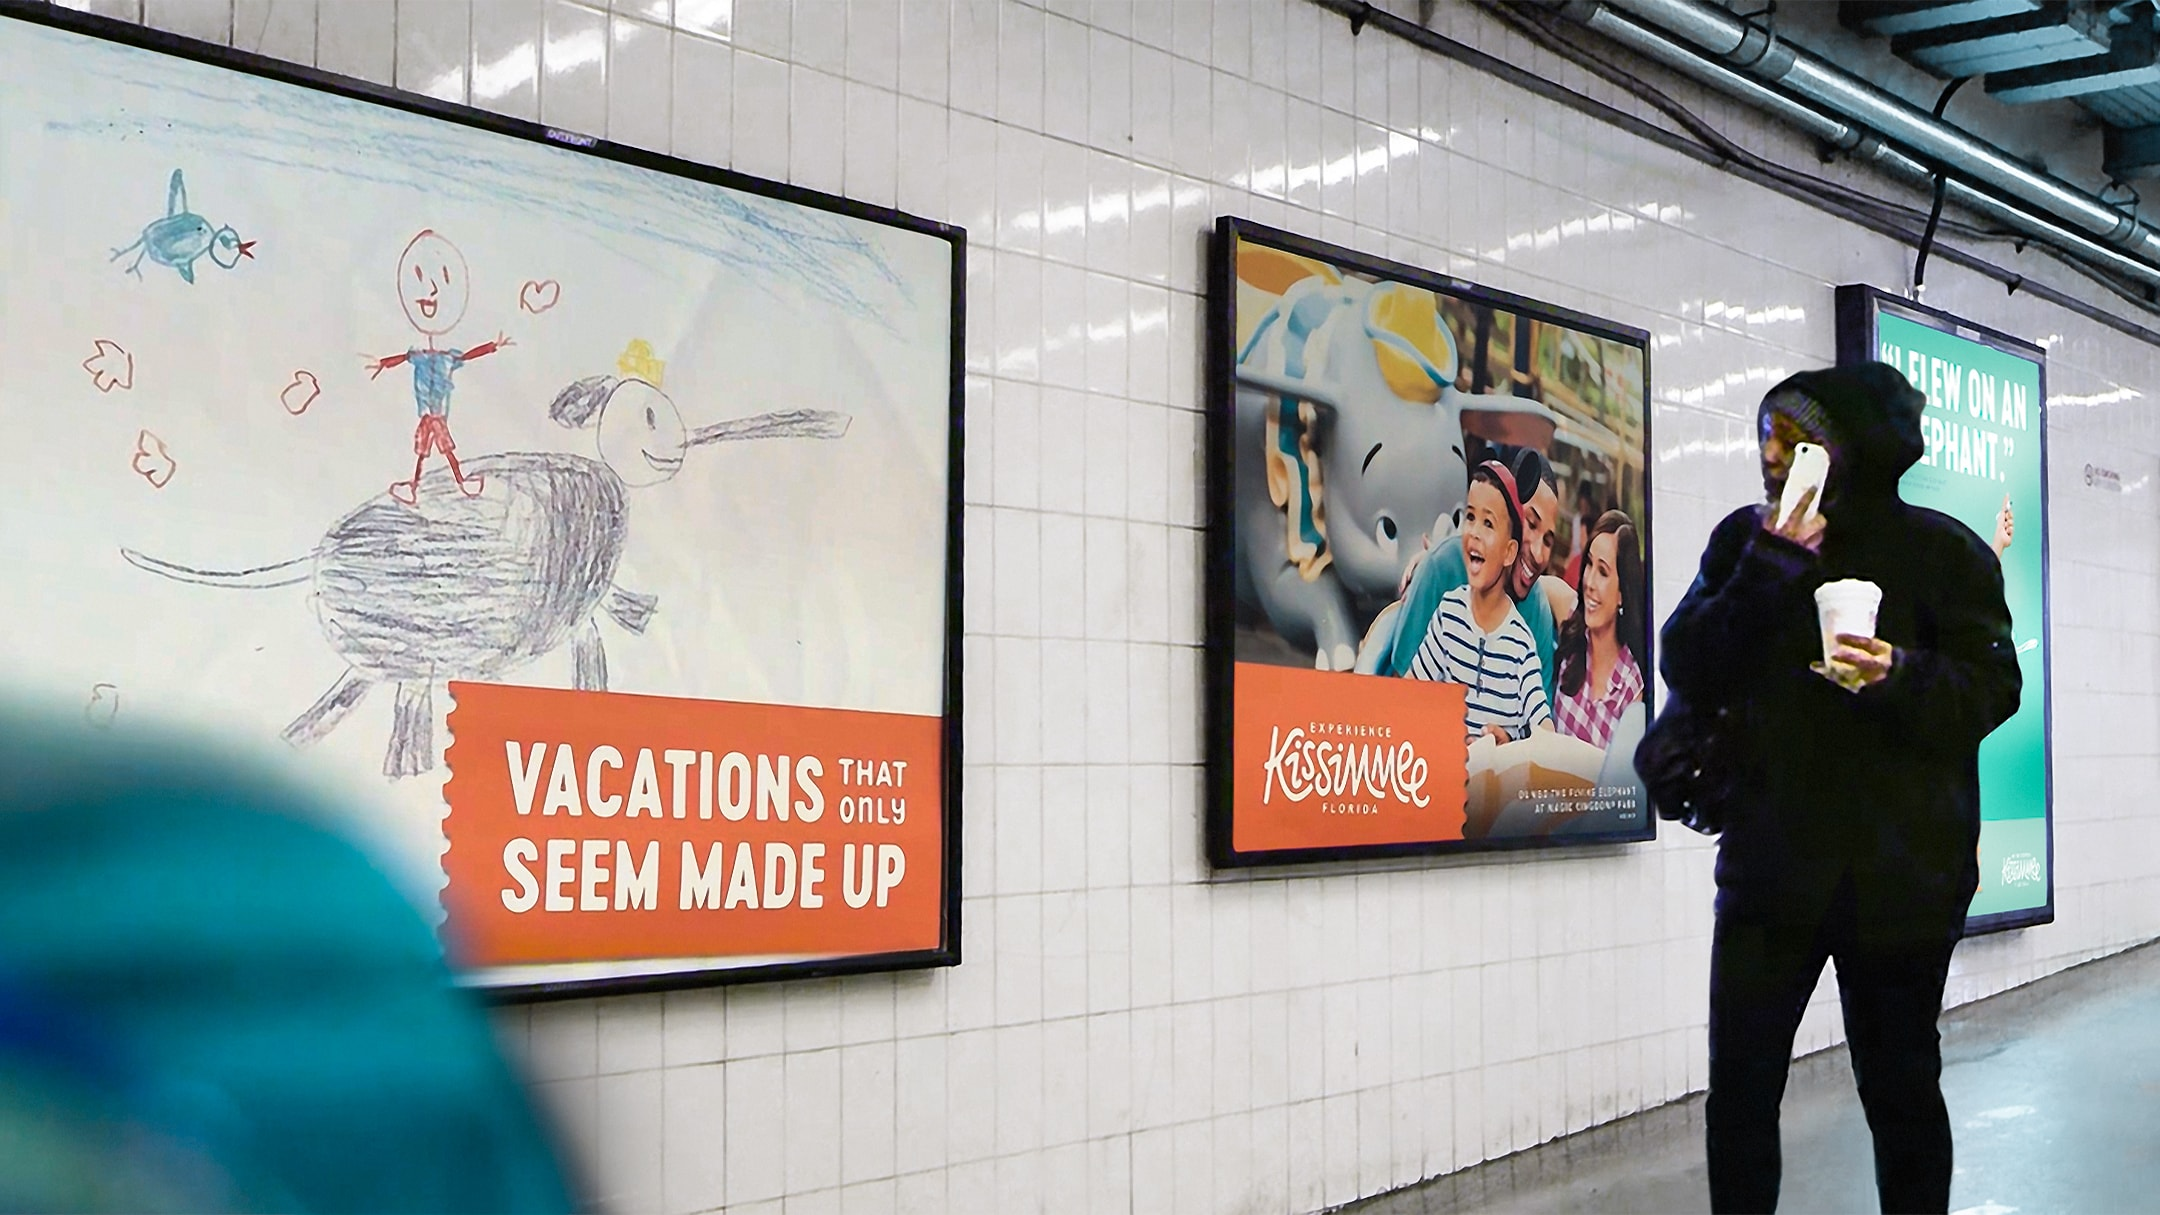 Example of our creative campaign and media planning for Experience Kissimmee's winter campaign. These ads was featured in a subway station.